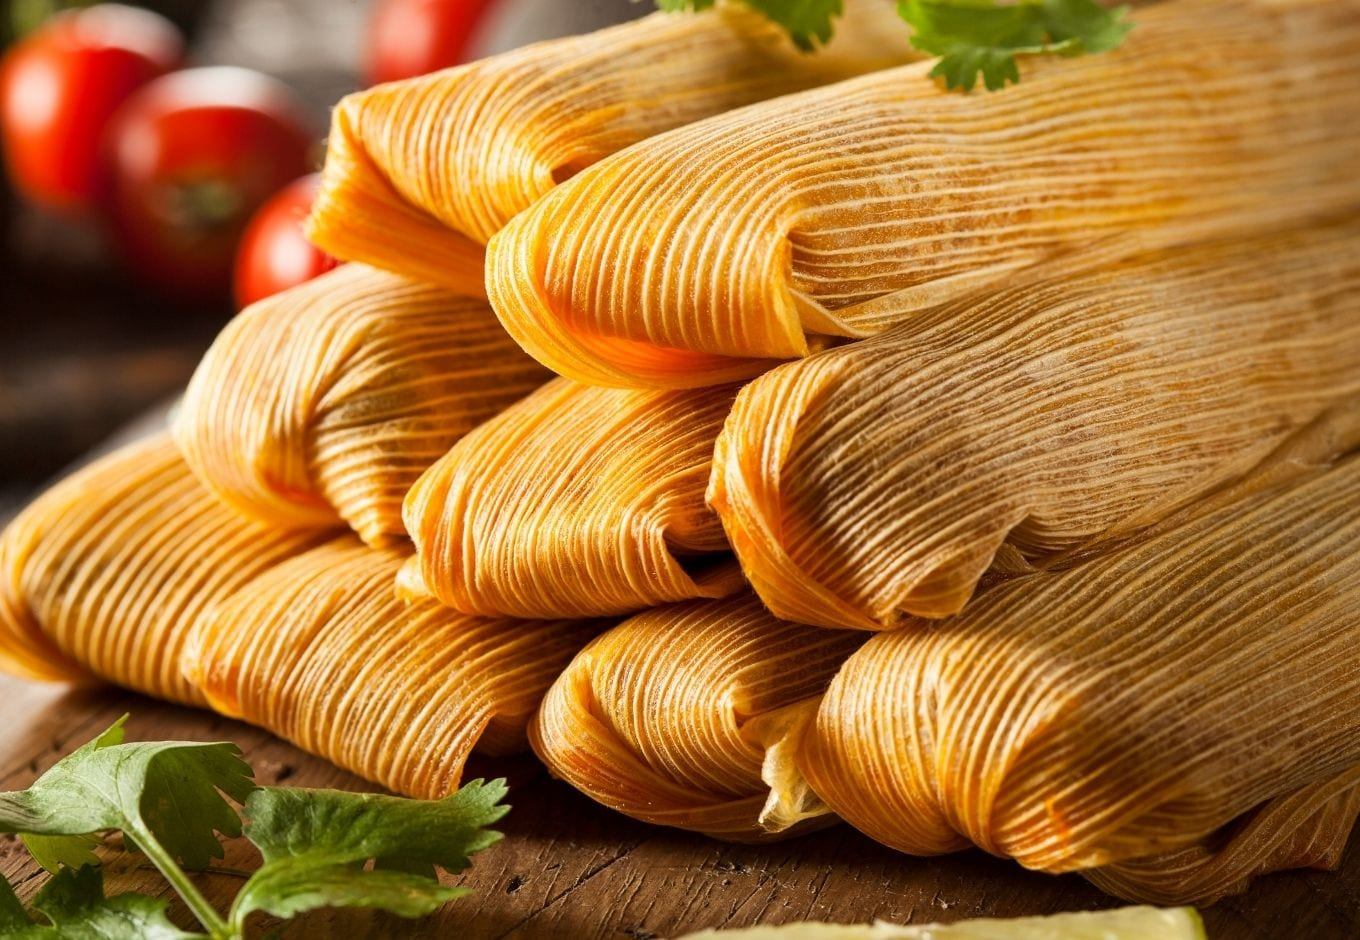 A pile of Mexican tamales.